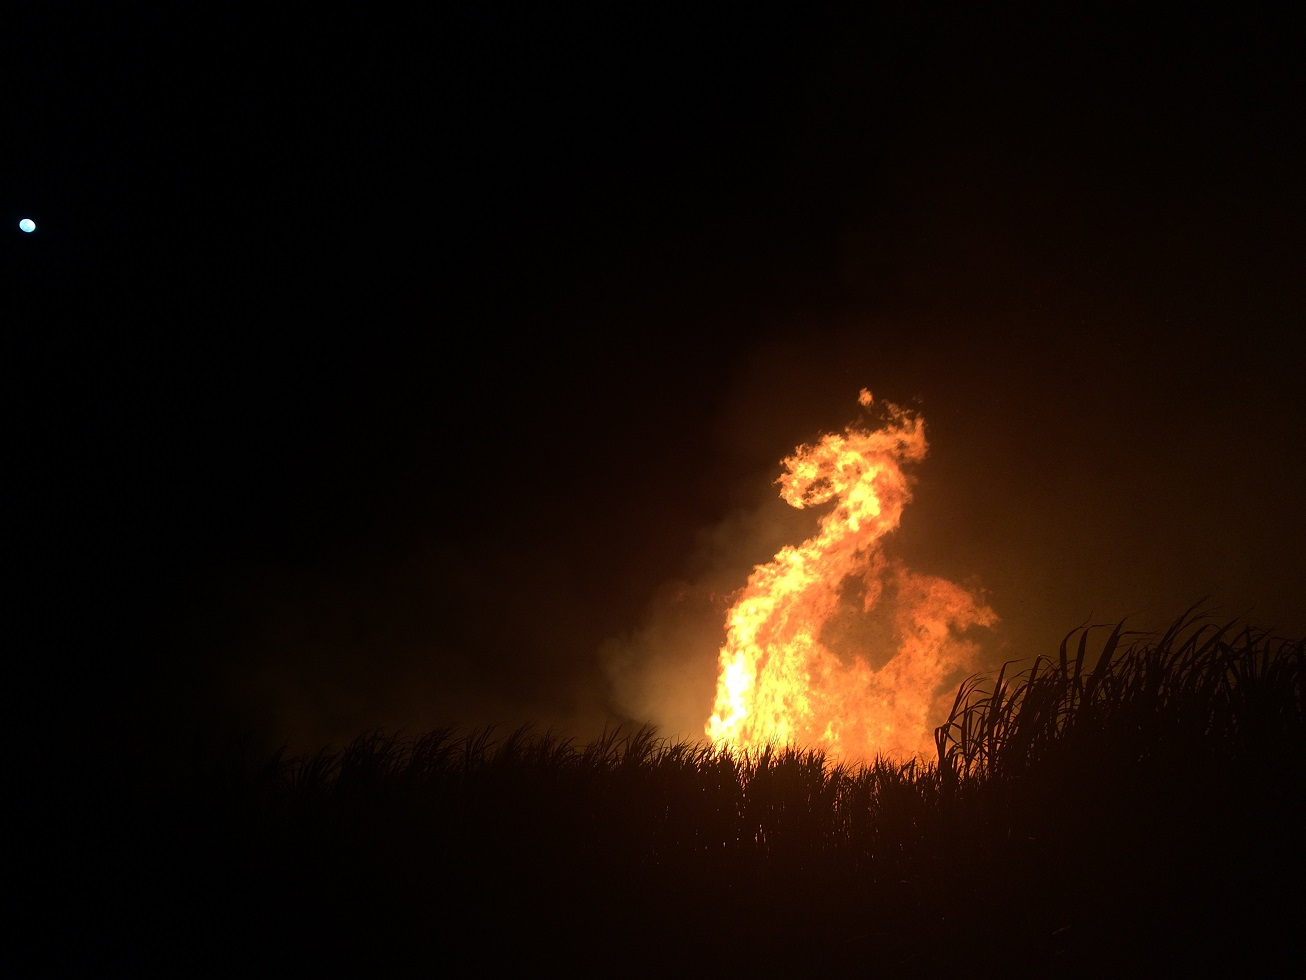 Paul Stanley-Jones snapped this shot of a cane fire just at the moment it curled into exactly the shape of a giant fire-breathing dragon!